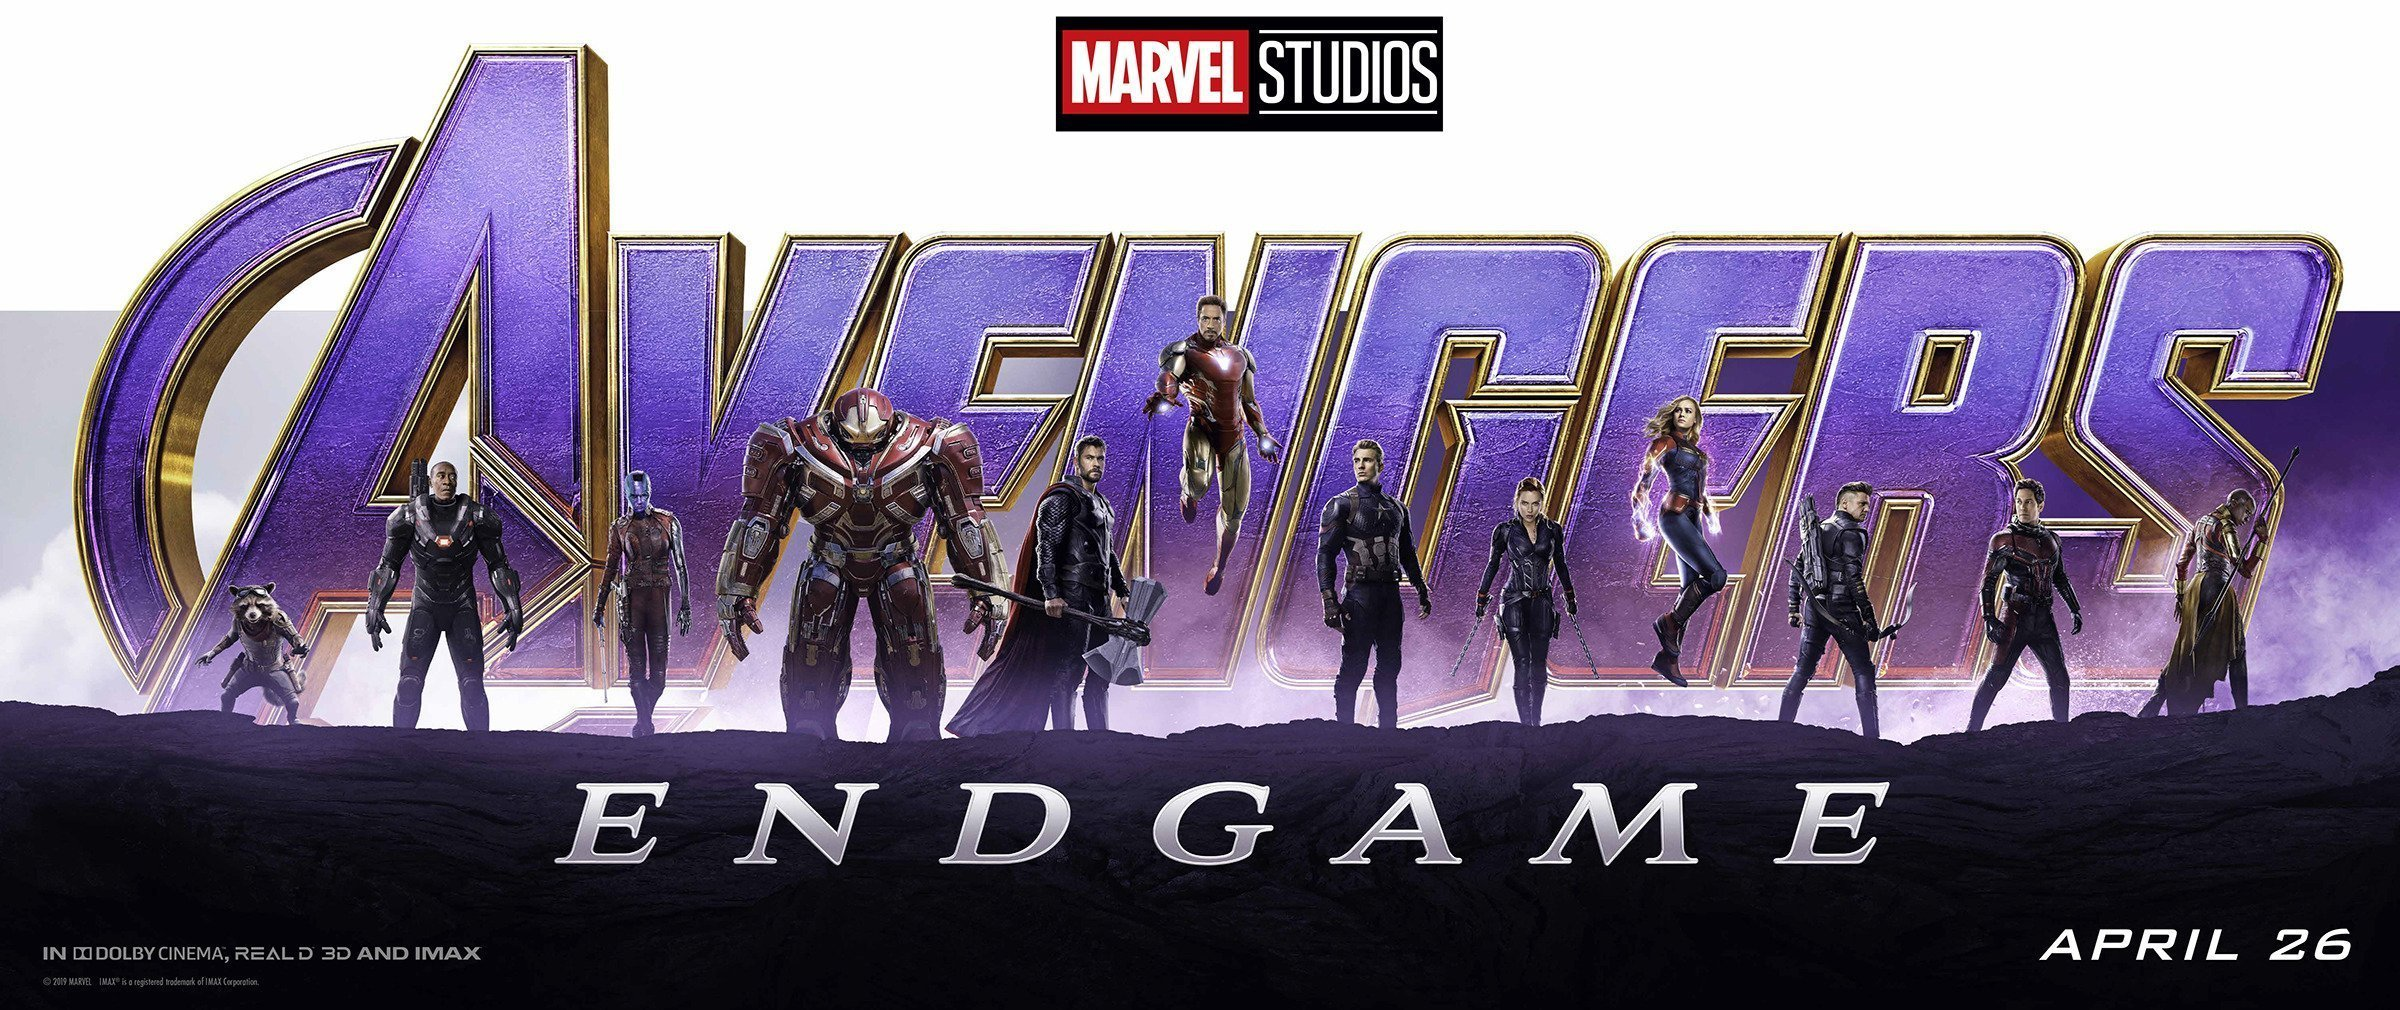 Bannière du film Avengers: Endgame réalisé par Anthony et Joe Russo, d'après un scénario de Christopher Markus et Stephen McFeely, avec, de gauche à droite, Rocket, War Machine, Nebula, Bruce Banner, Thor, Iron Man, Captain America, Black Widow, Captain Marvel, Hawkeye, Ant-Man et Okoye